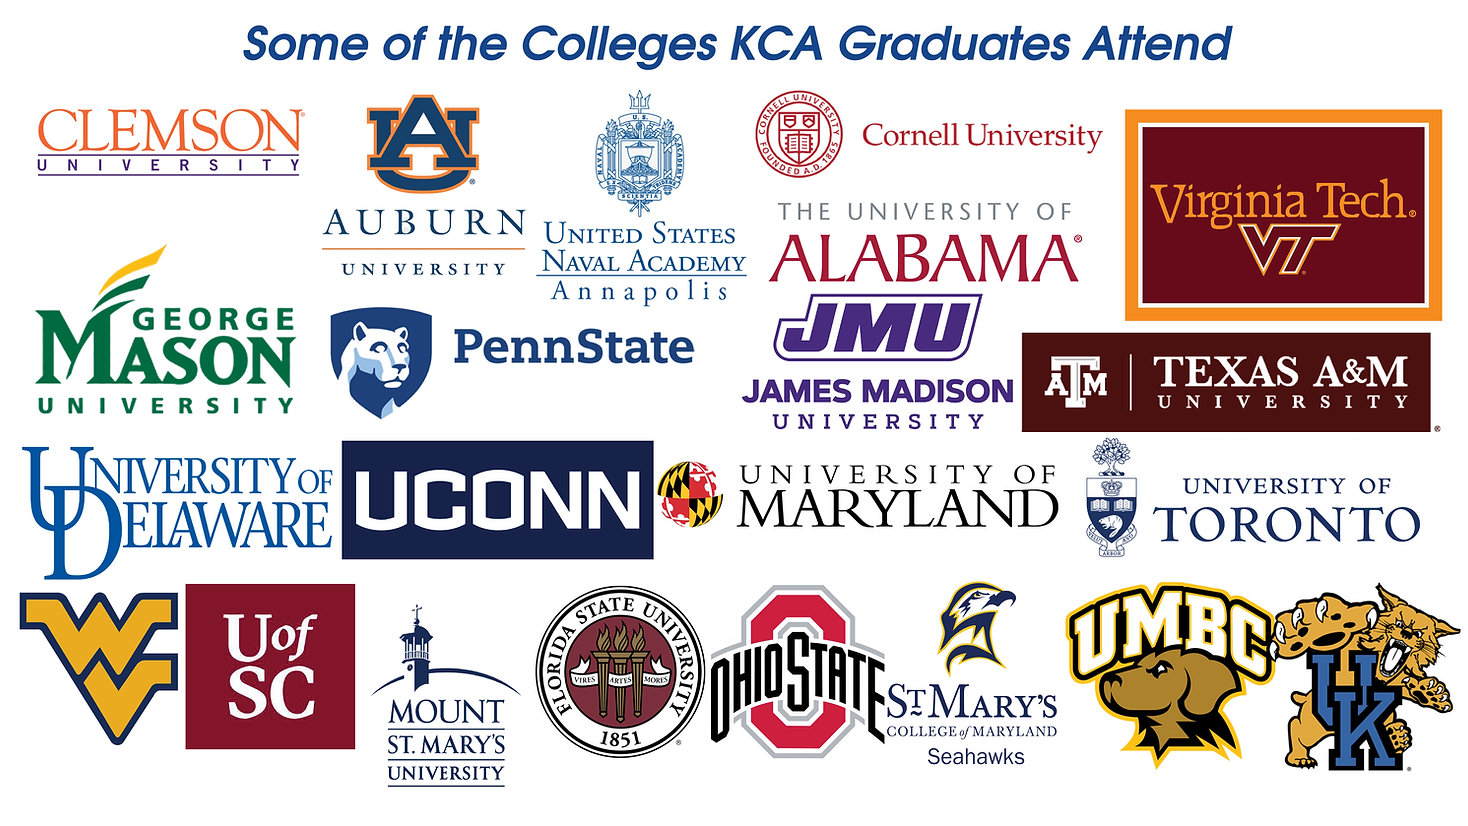 Colleges Graduates Attend Rev 9-8.jpg